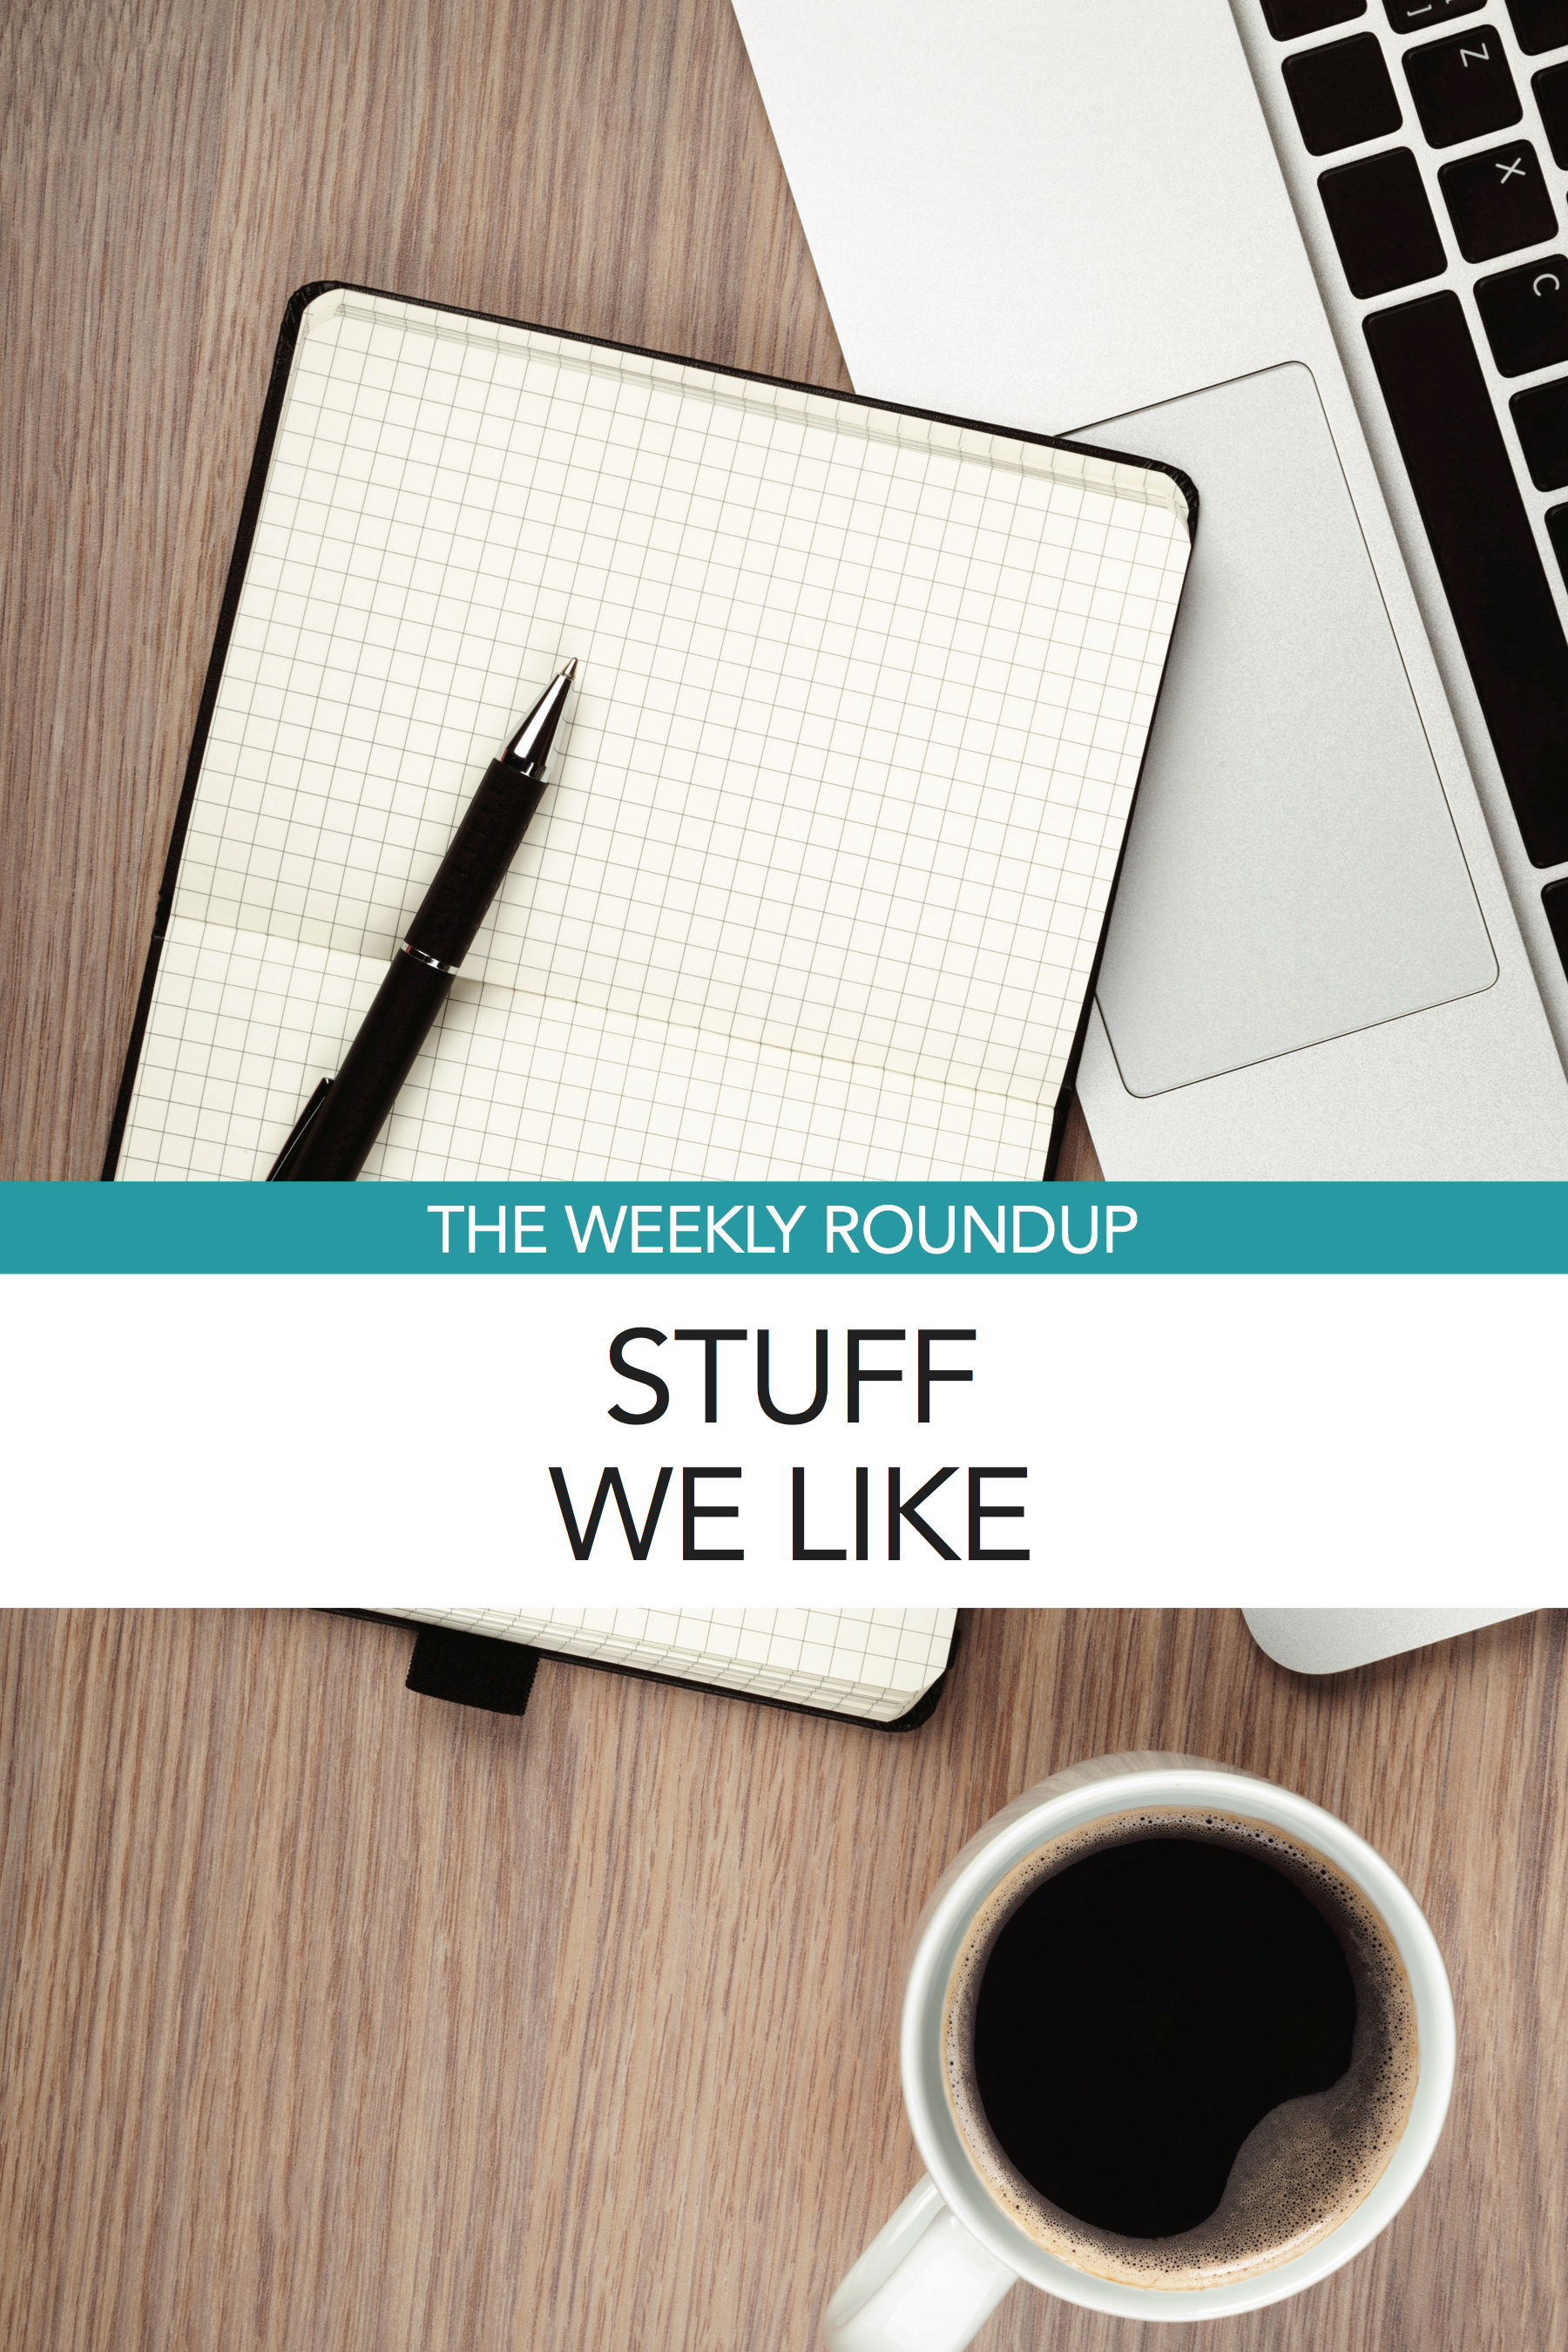 home|school|life's Friday roundup of the best homeschool links, reads, tools, and other fun stuff has lots of ideas and resources.